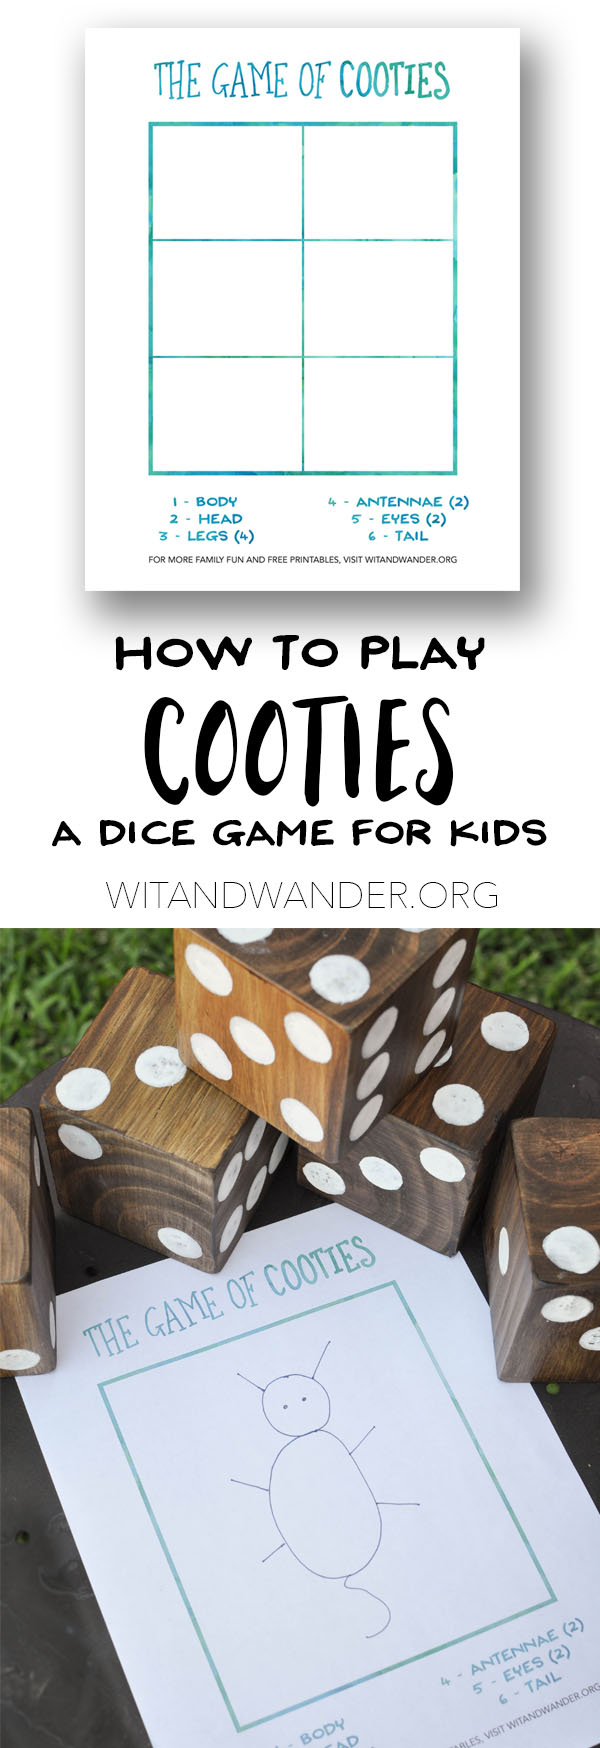 Cooties Game Pinterest - Wit & Wander copy